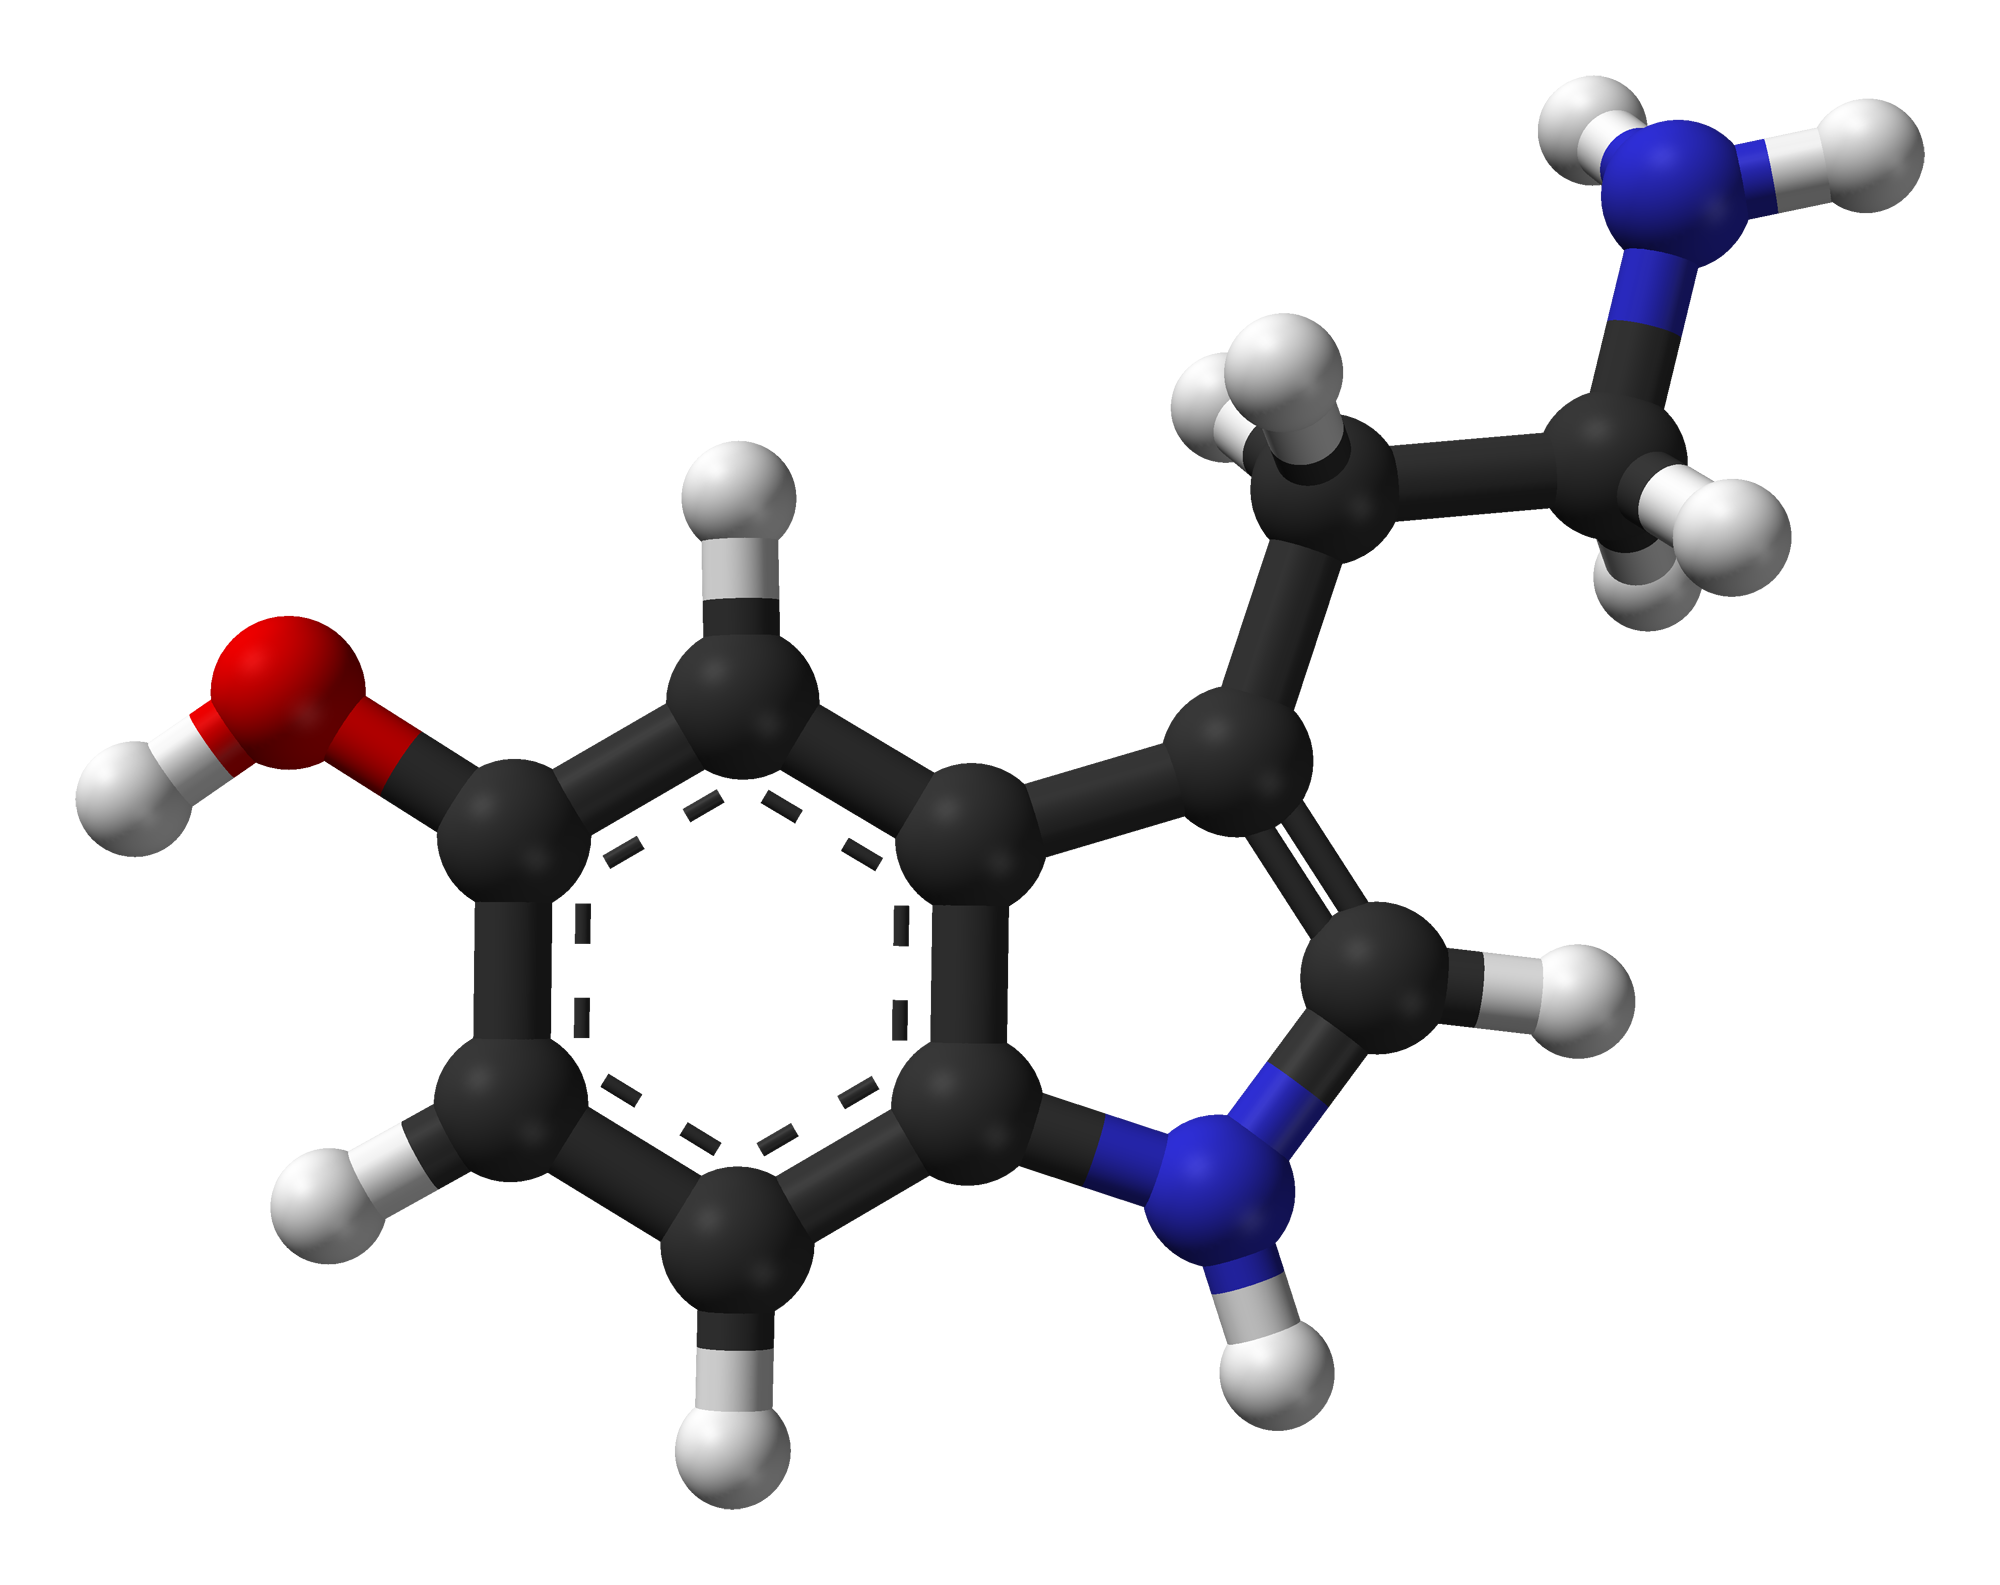 Serotonin-Spartan-HF-based-on-xtal-3D-balls-web